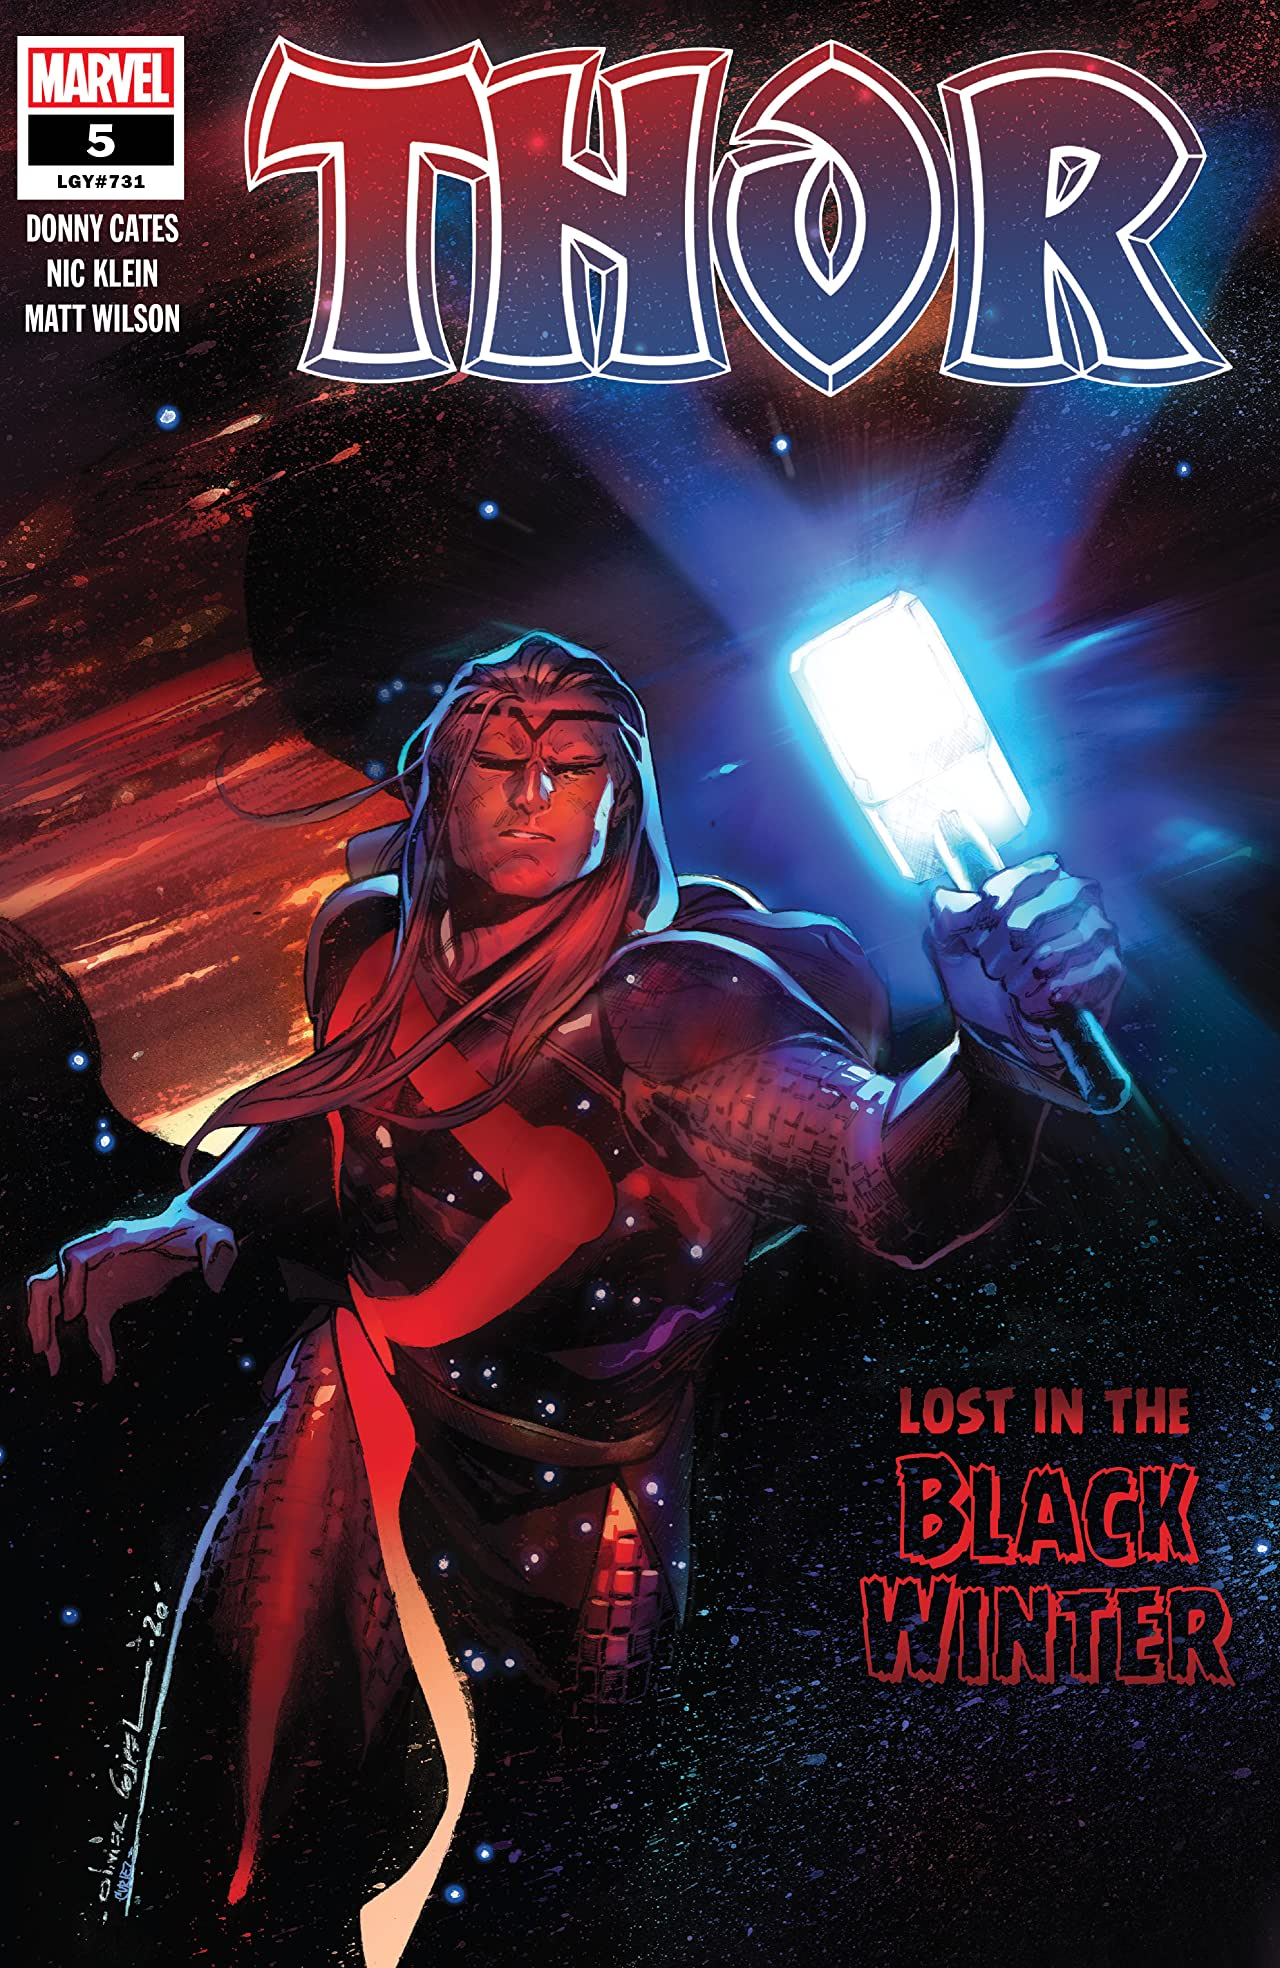 Thor #5 Lost In The Black Winter